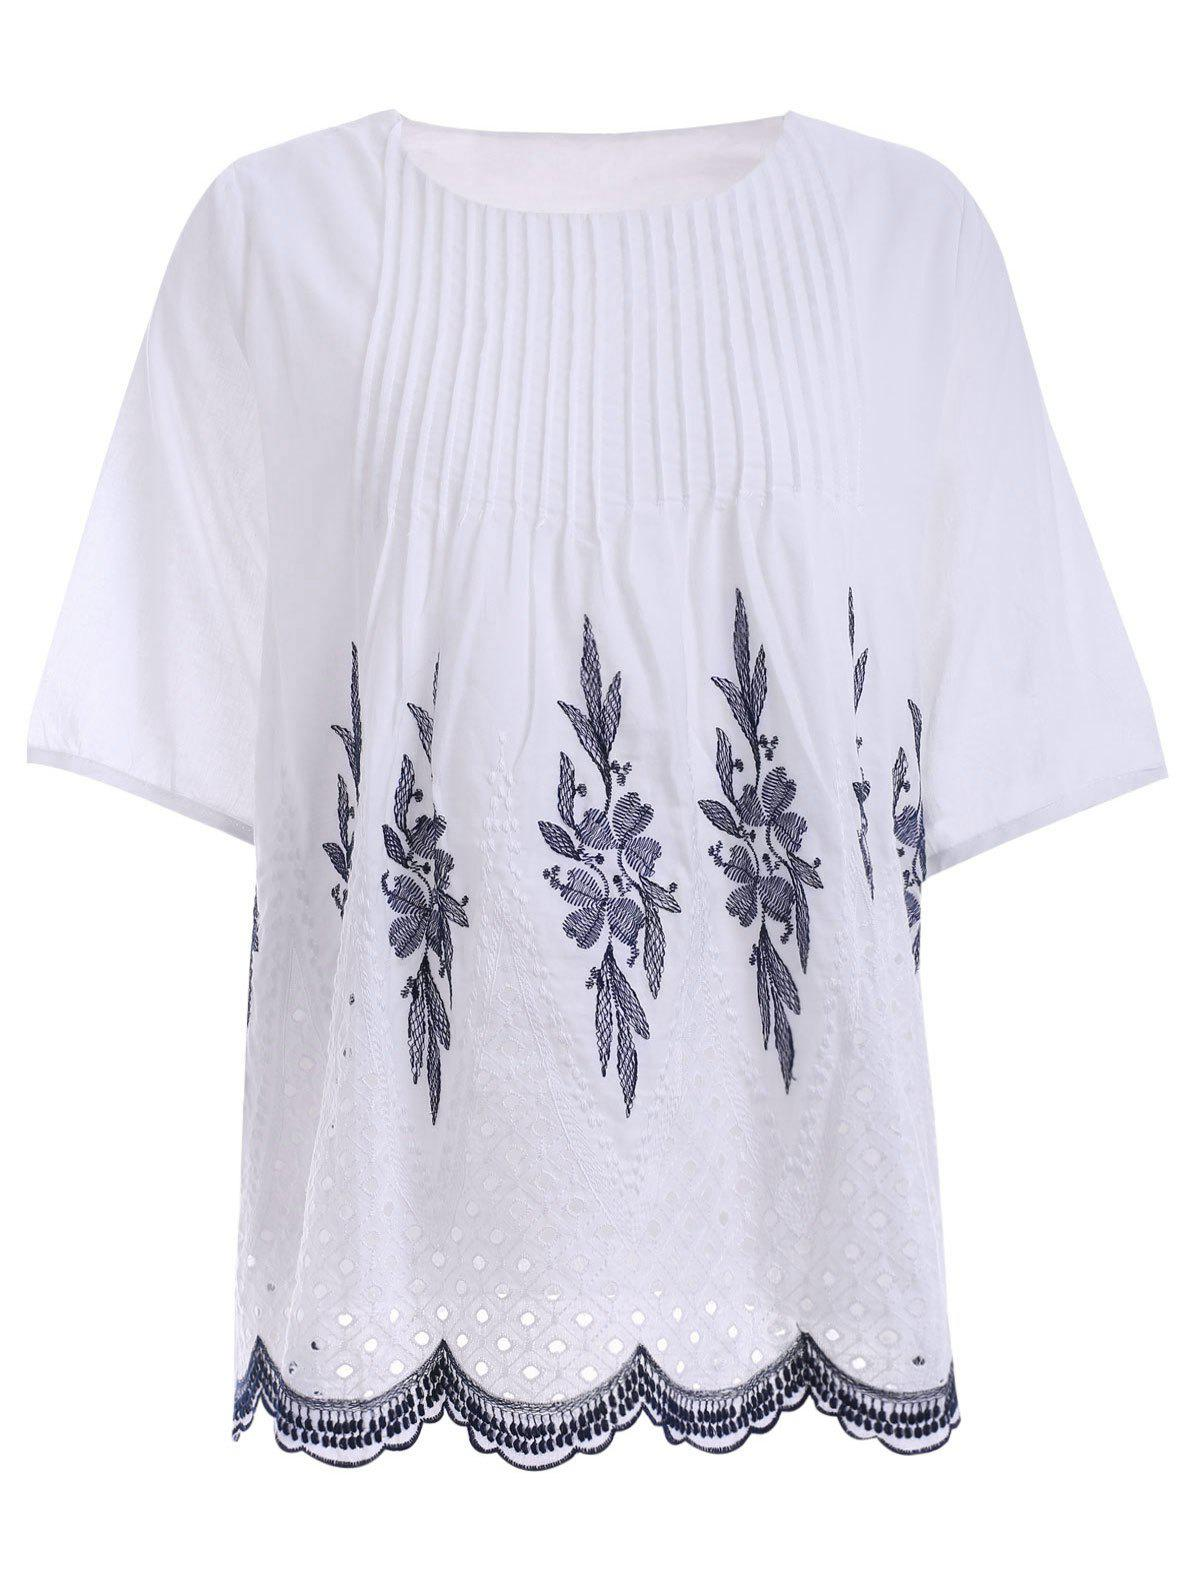 Brief Floral Embroidered Ribbed Crochet Blouse For Women